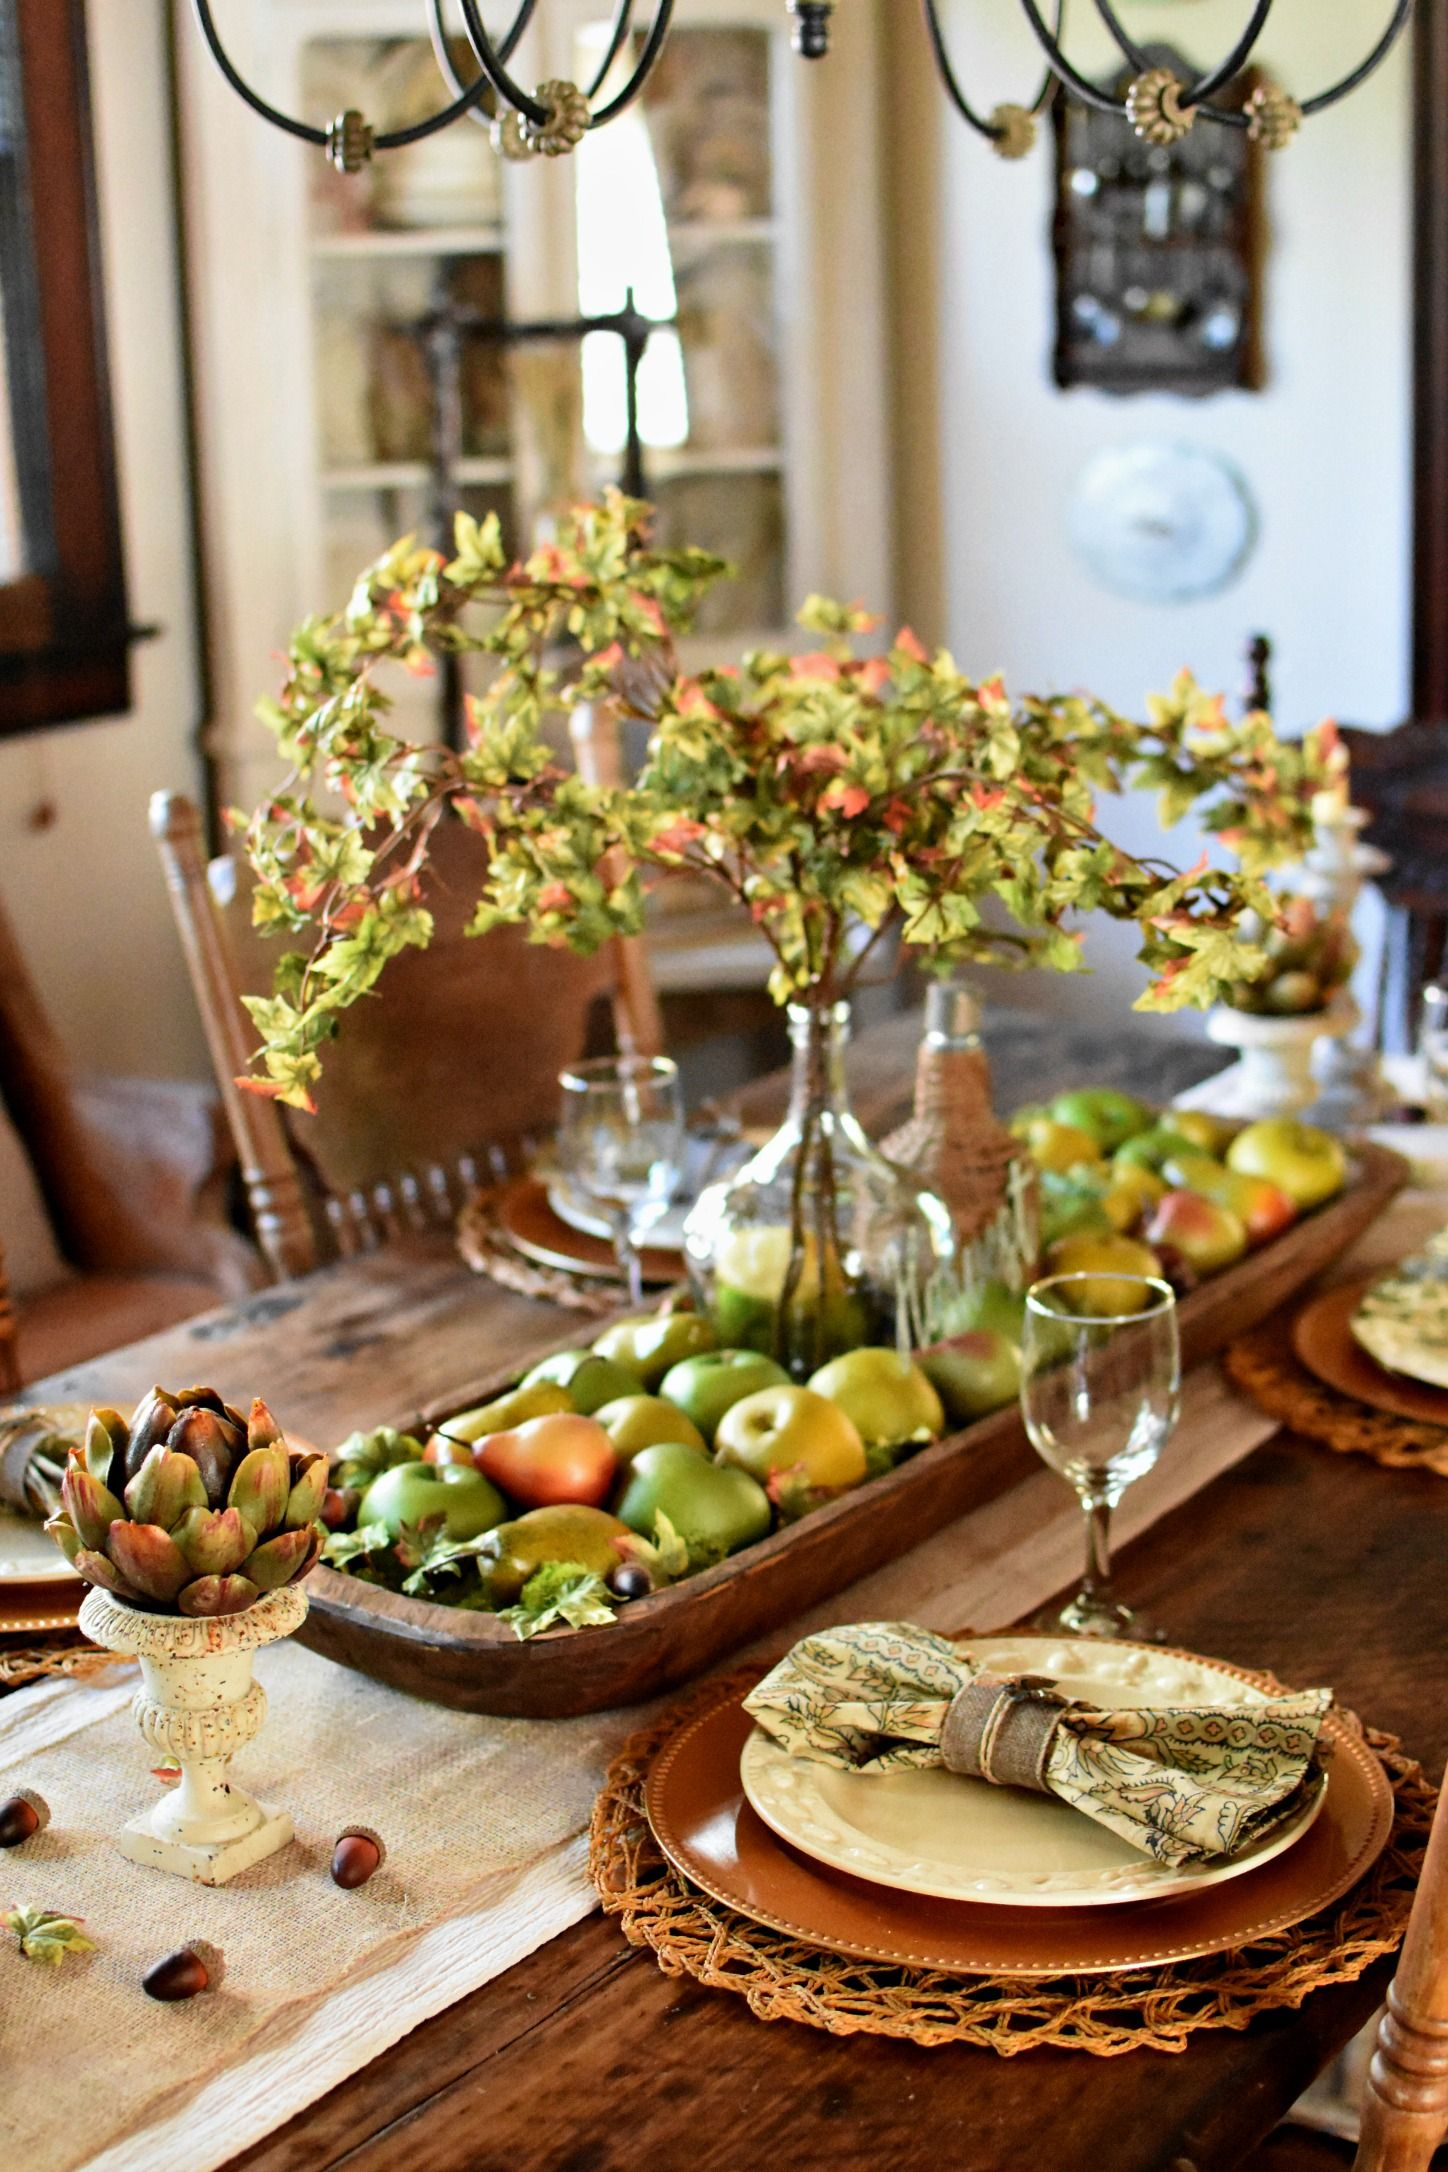 Home interior fruit plates early fall tablescape harvest fruits apples pears french country